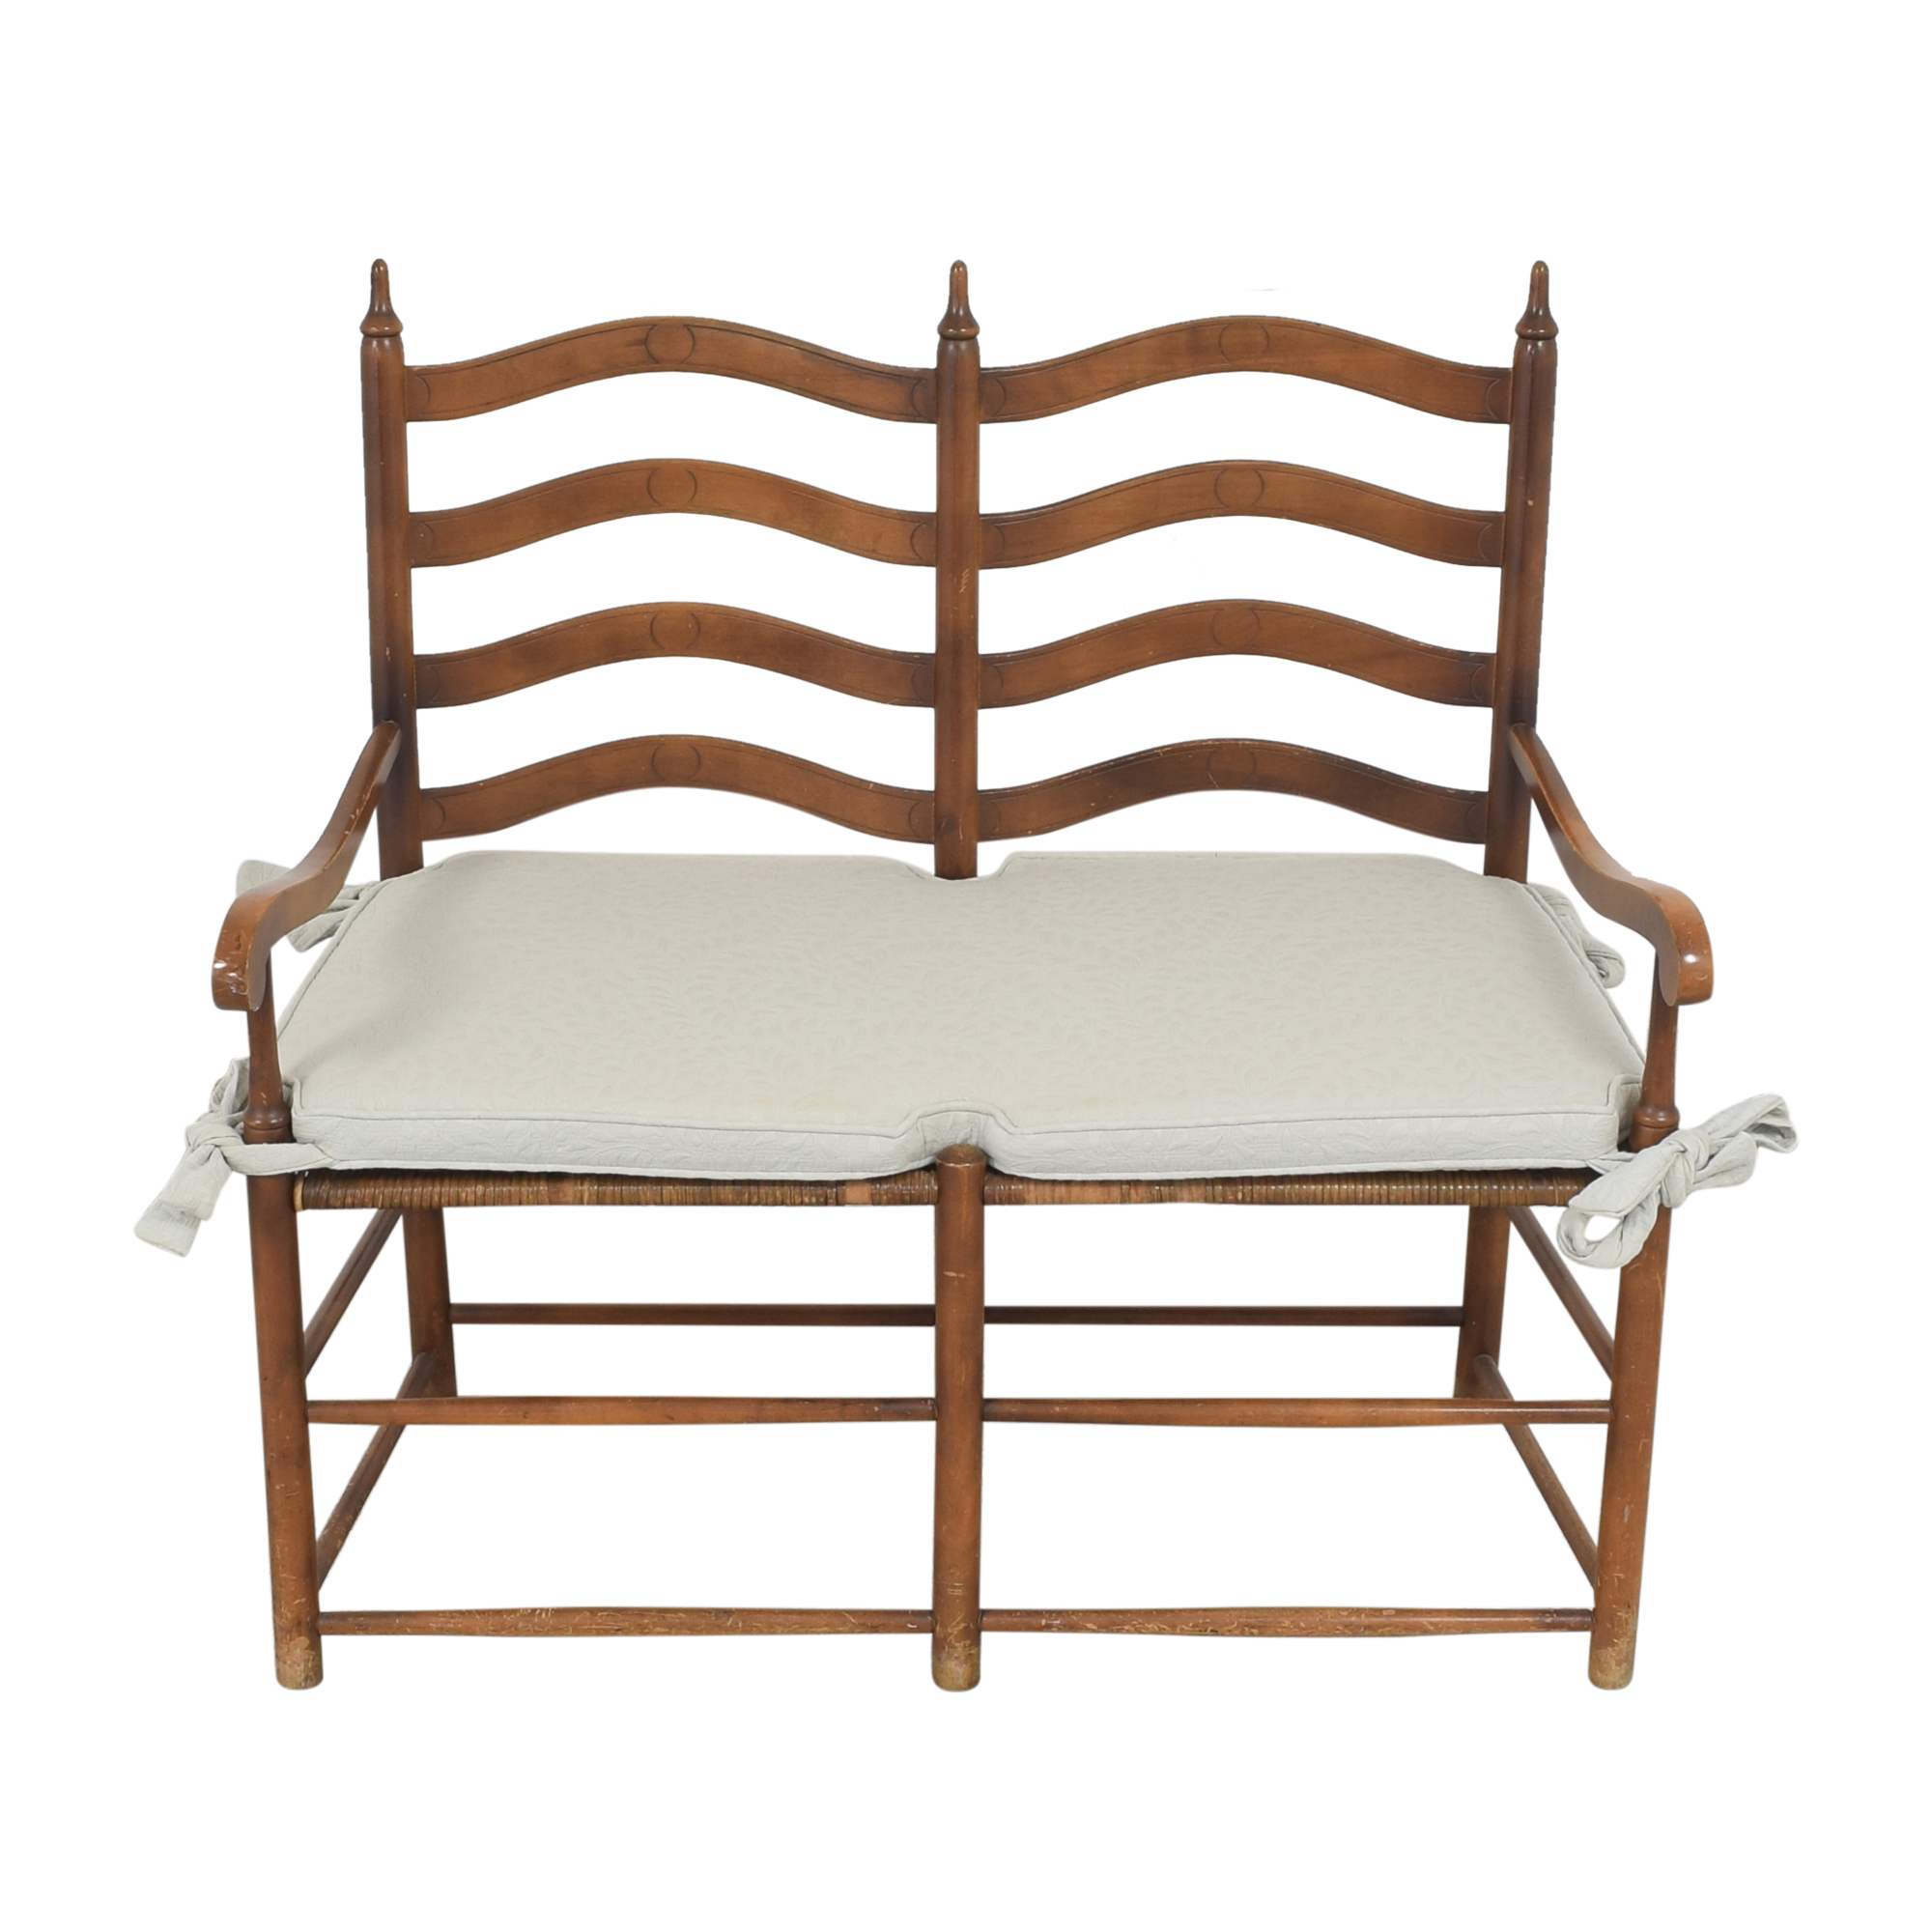 Ladderback Settee Bench with Cushion / Benches